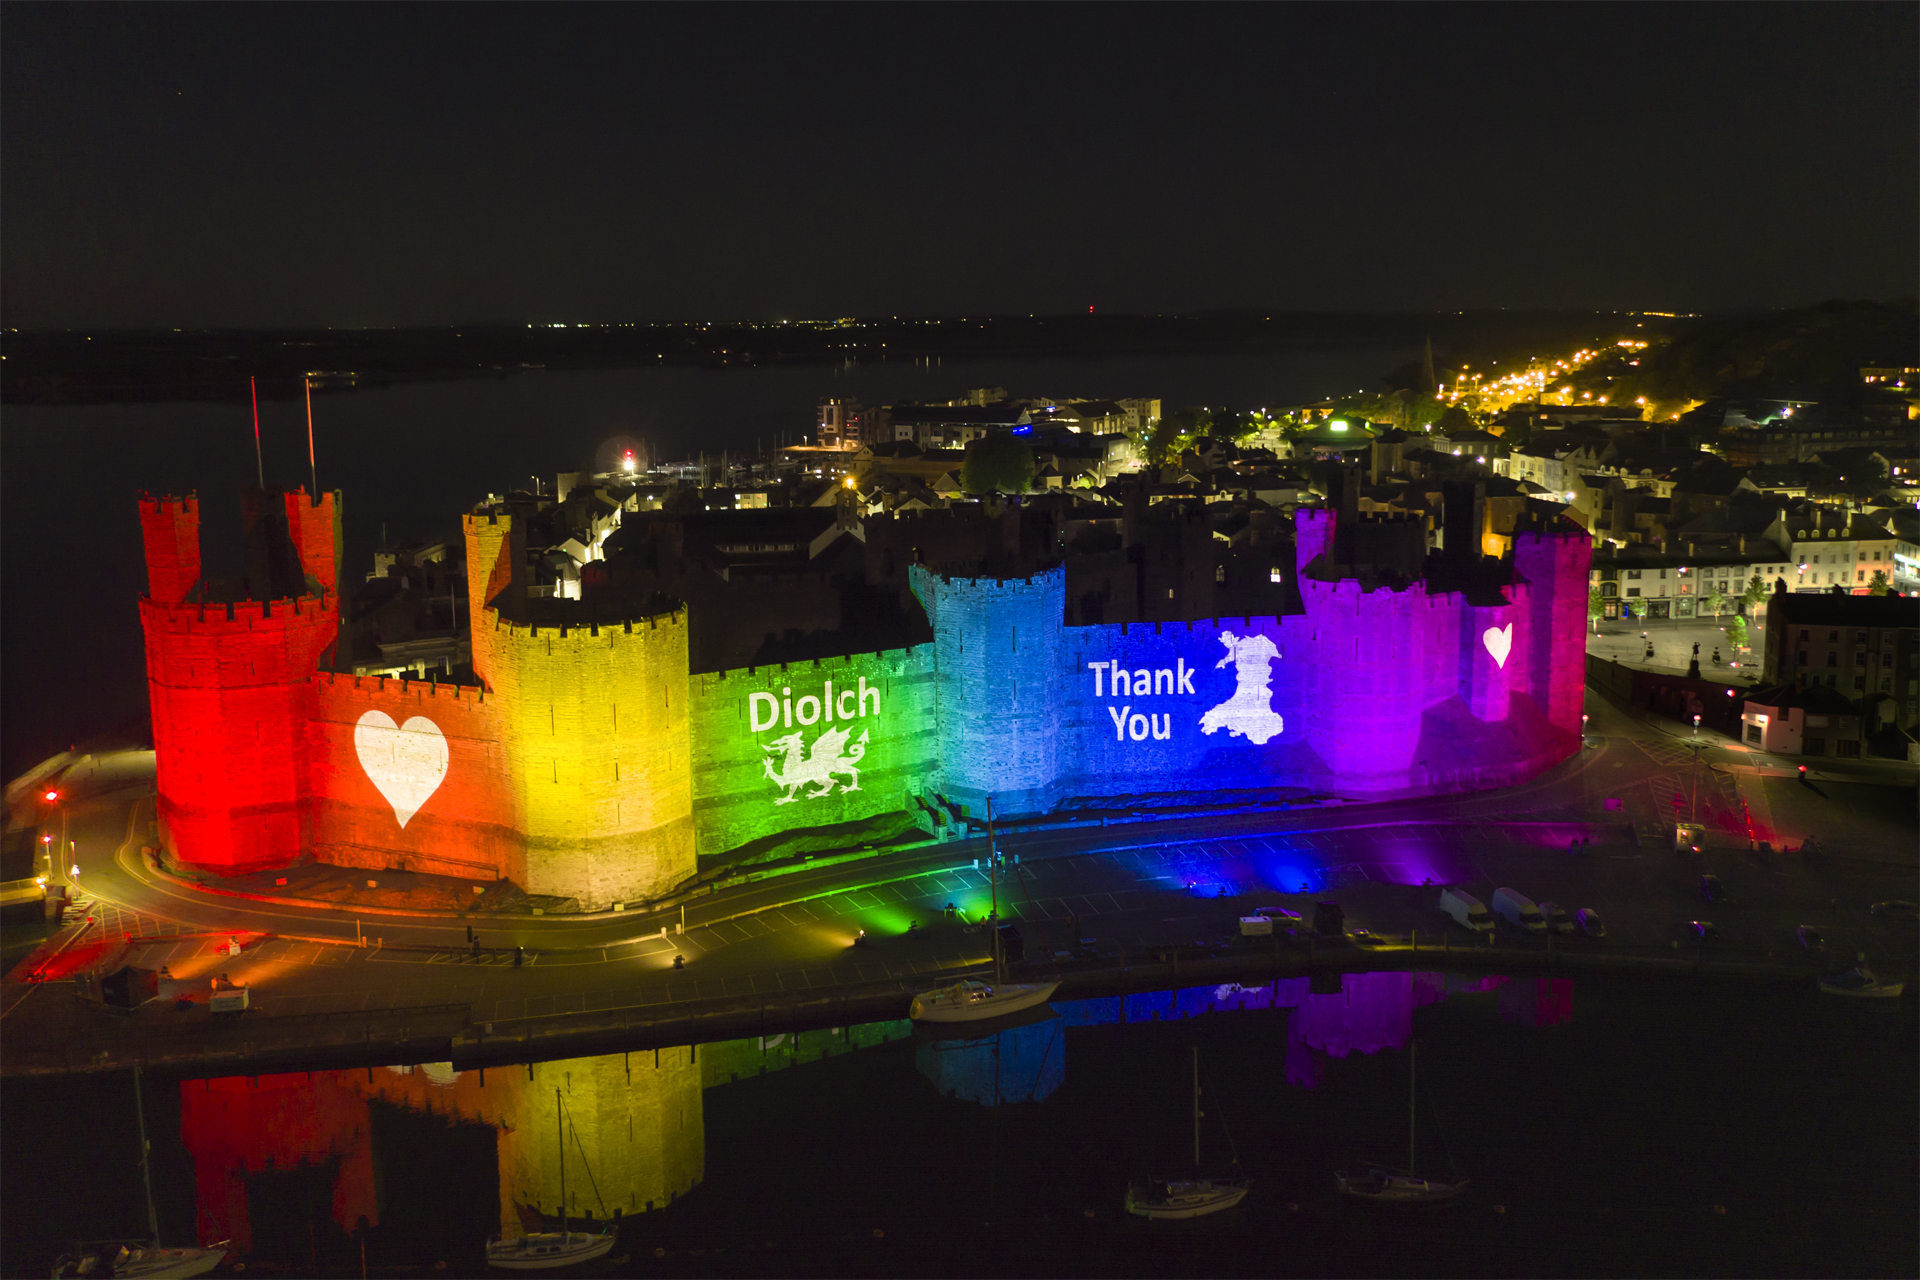 Caernarfon Castle Lit Rainbow Lights Lighting NHS 0160D3